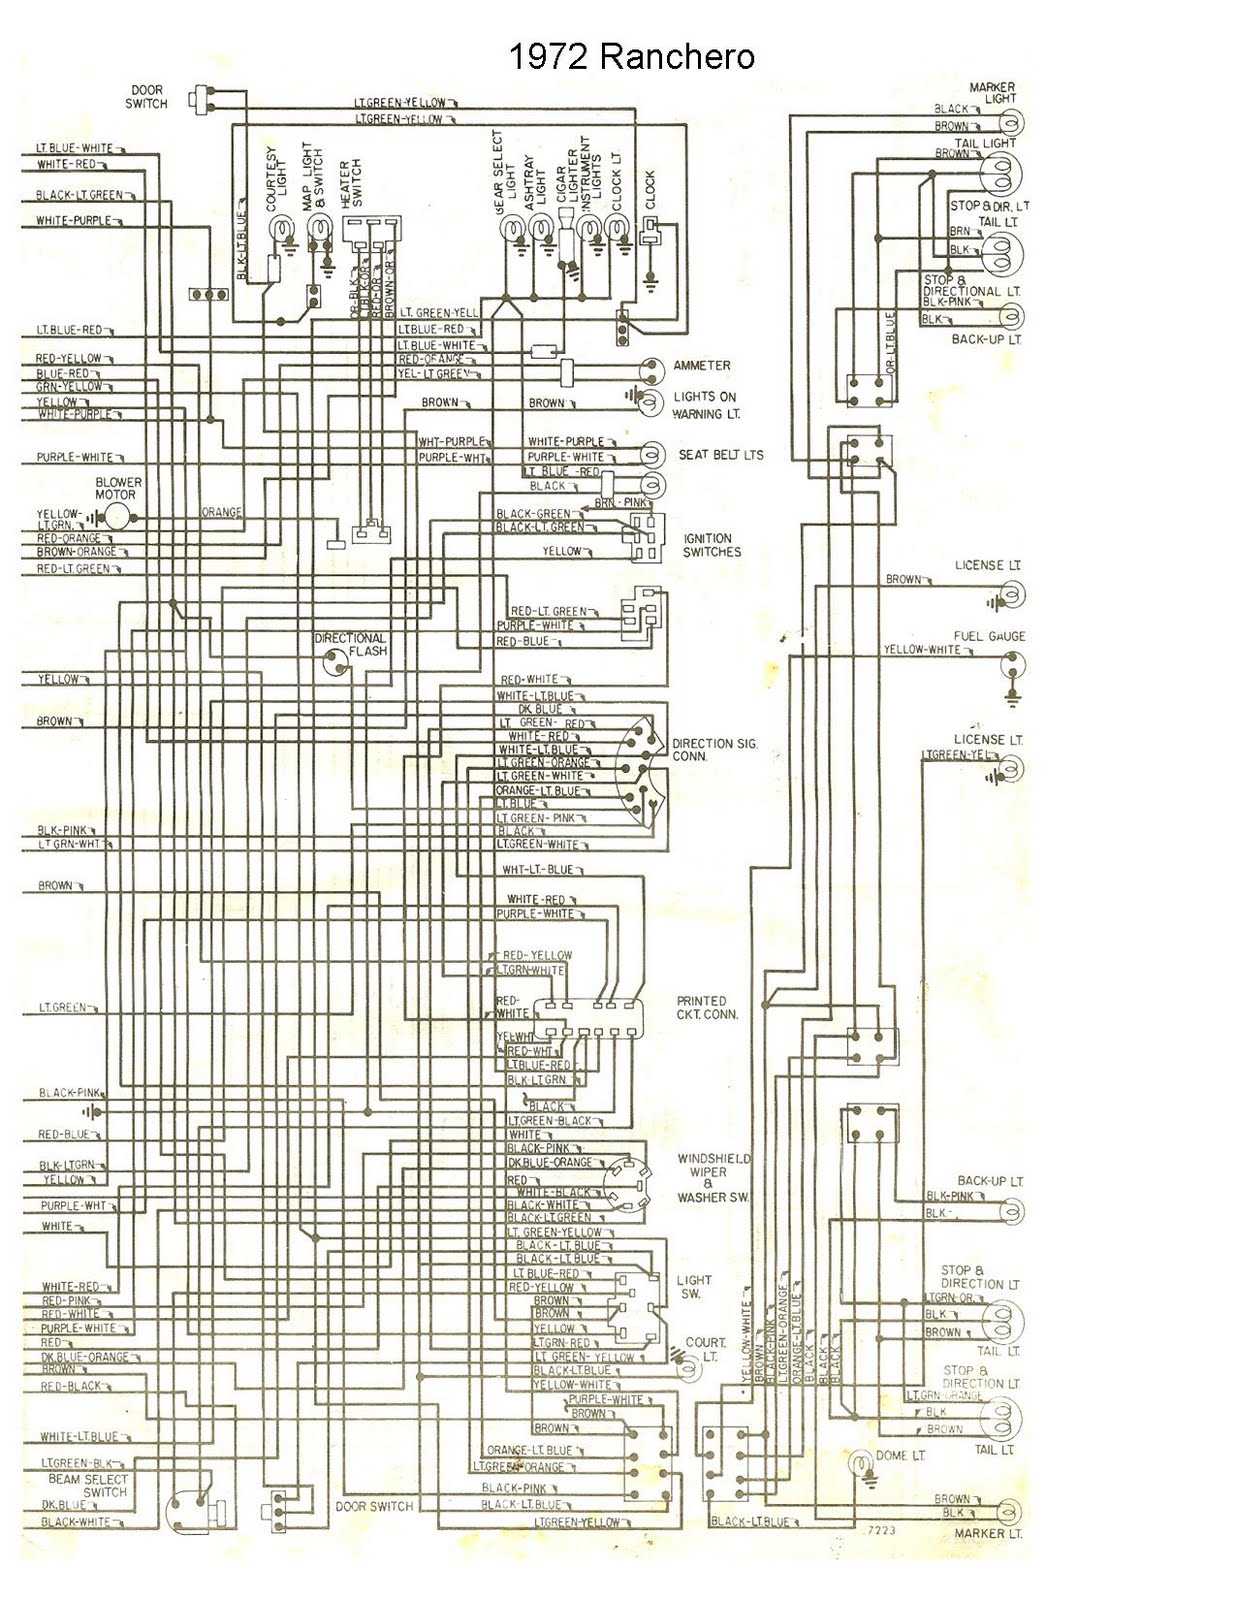 small resolution of 1970 ford f100 wiring harness schematic diagrams wiring diagram for 1965 falcon wiring diagram for 1962